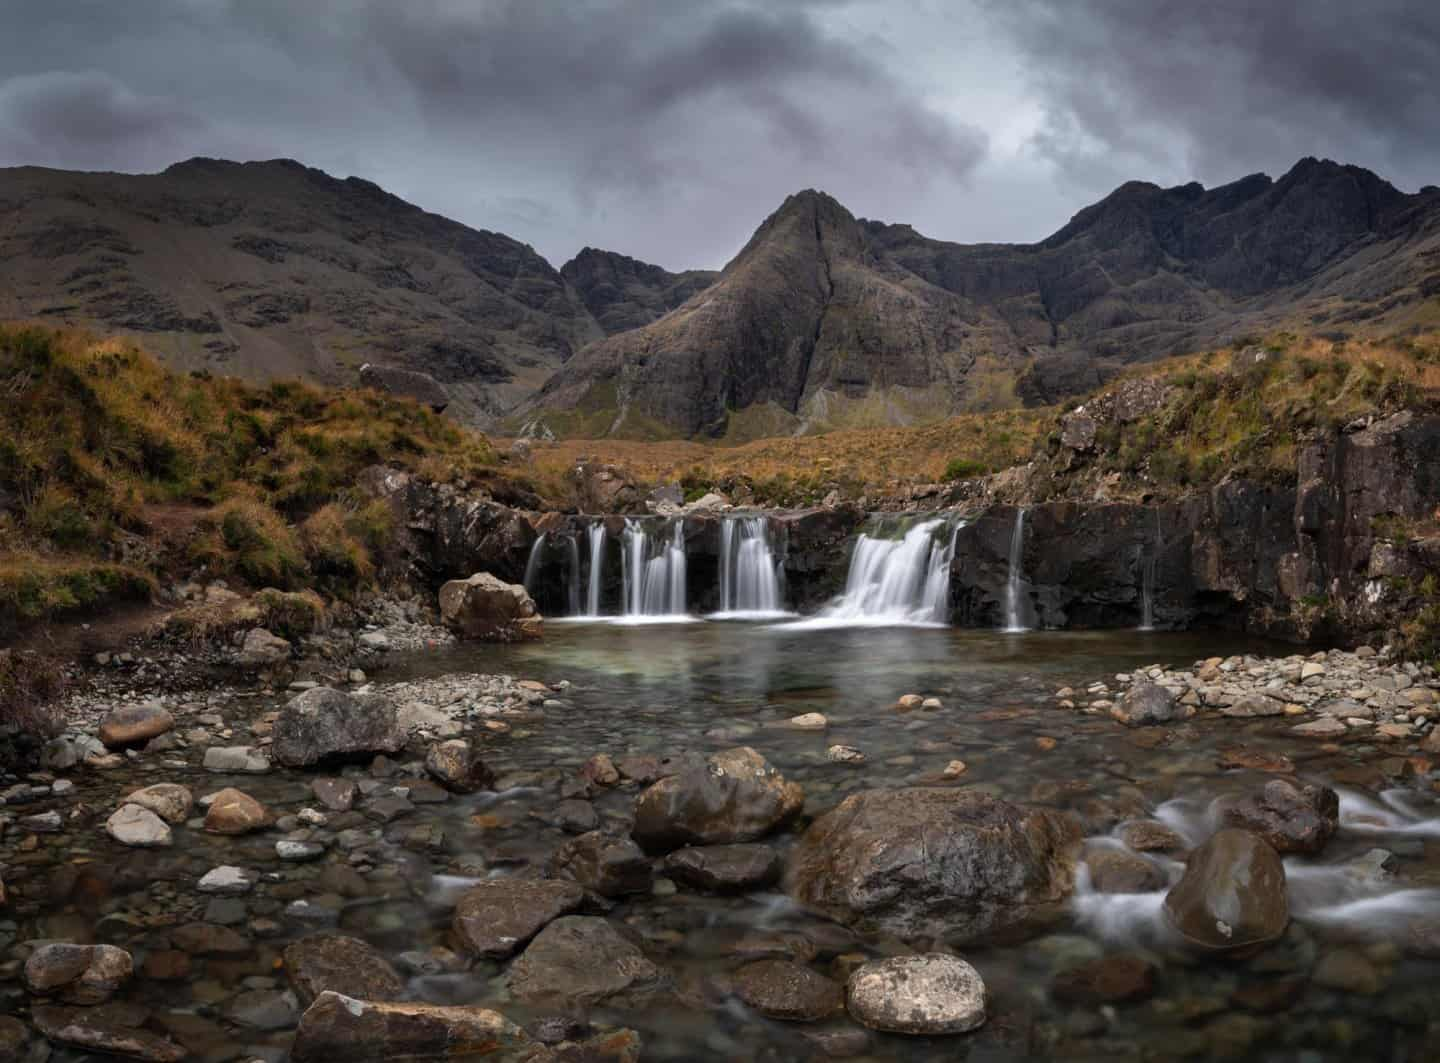 10 Days in Scotland does not leave much time for the Fairy Pools. This small cascade is probably the most popular spot for photographers at Fairy Pools.